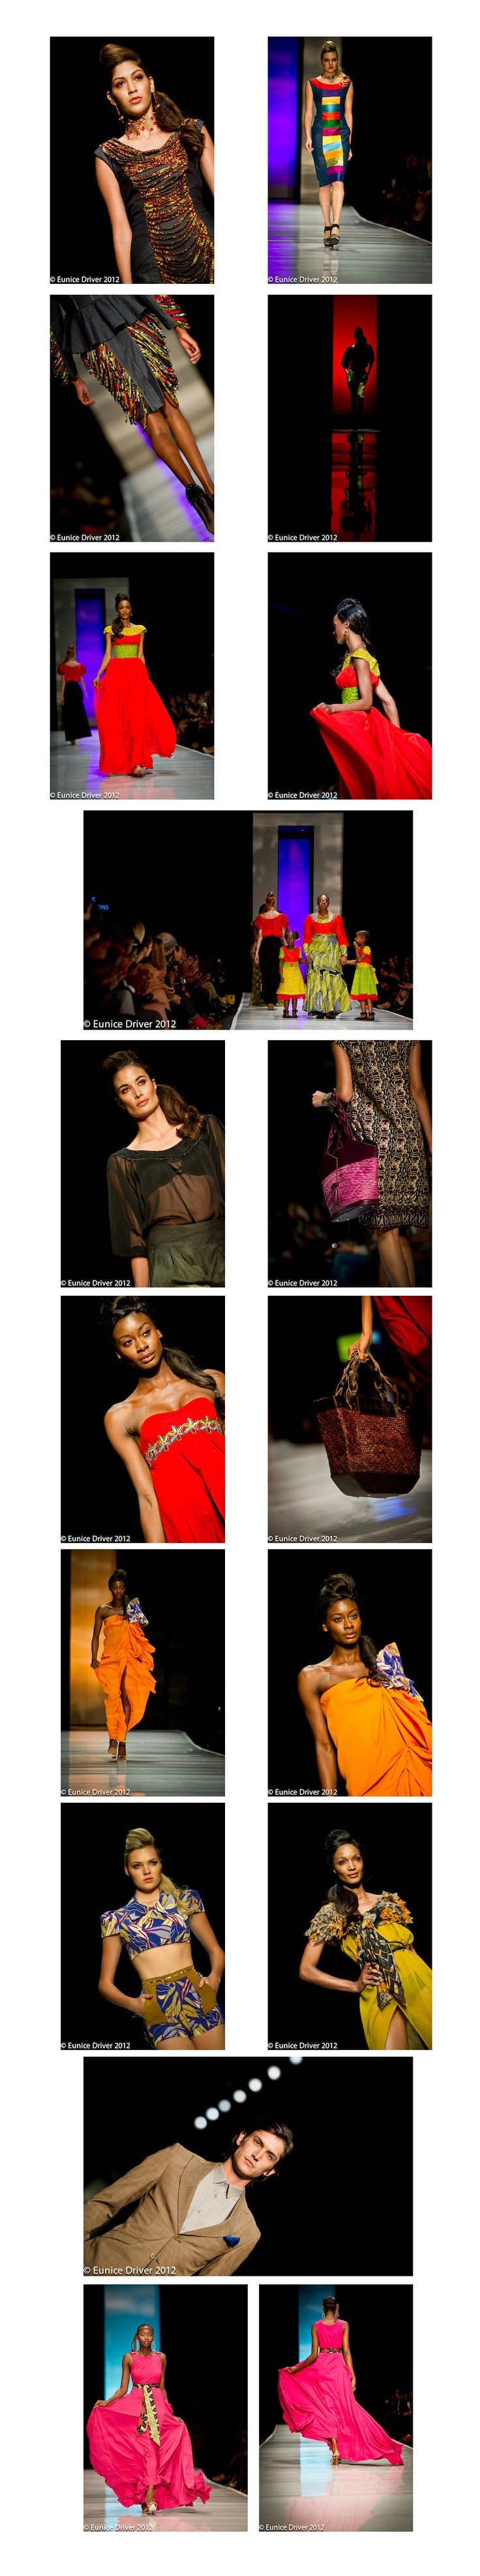 SA Fashion Week 4